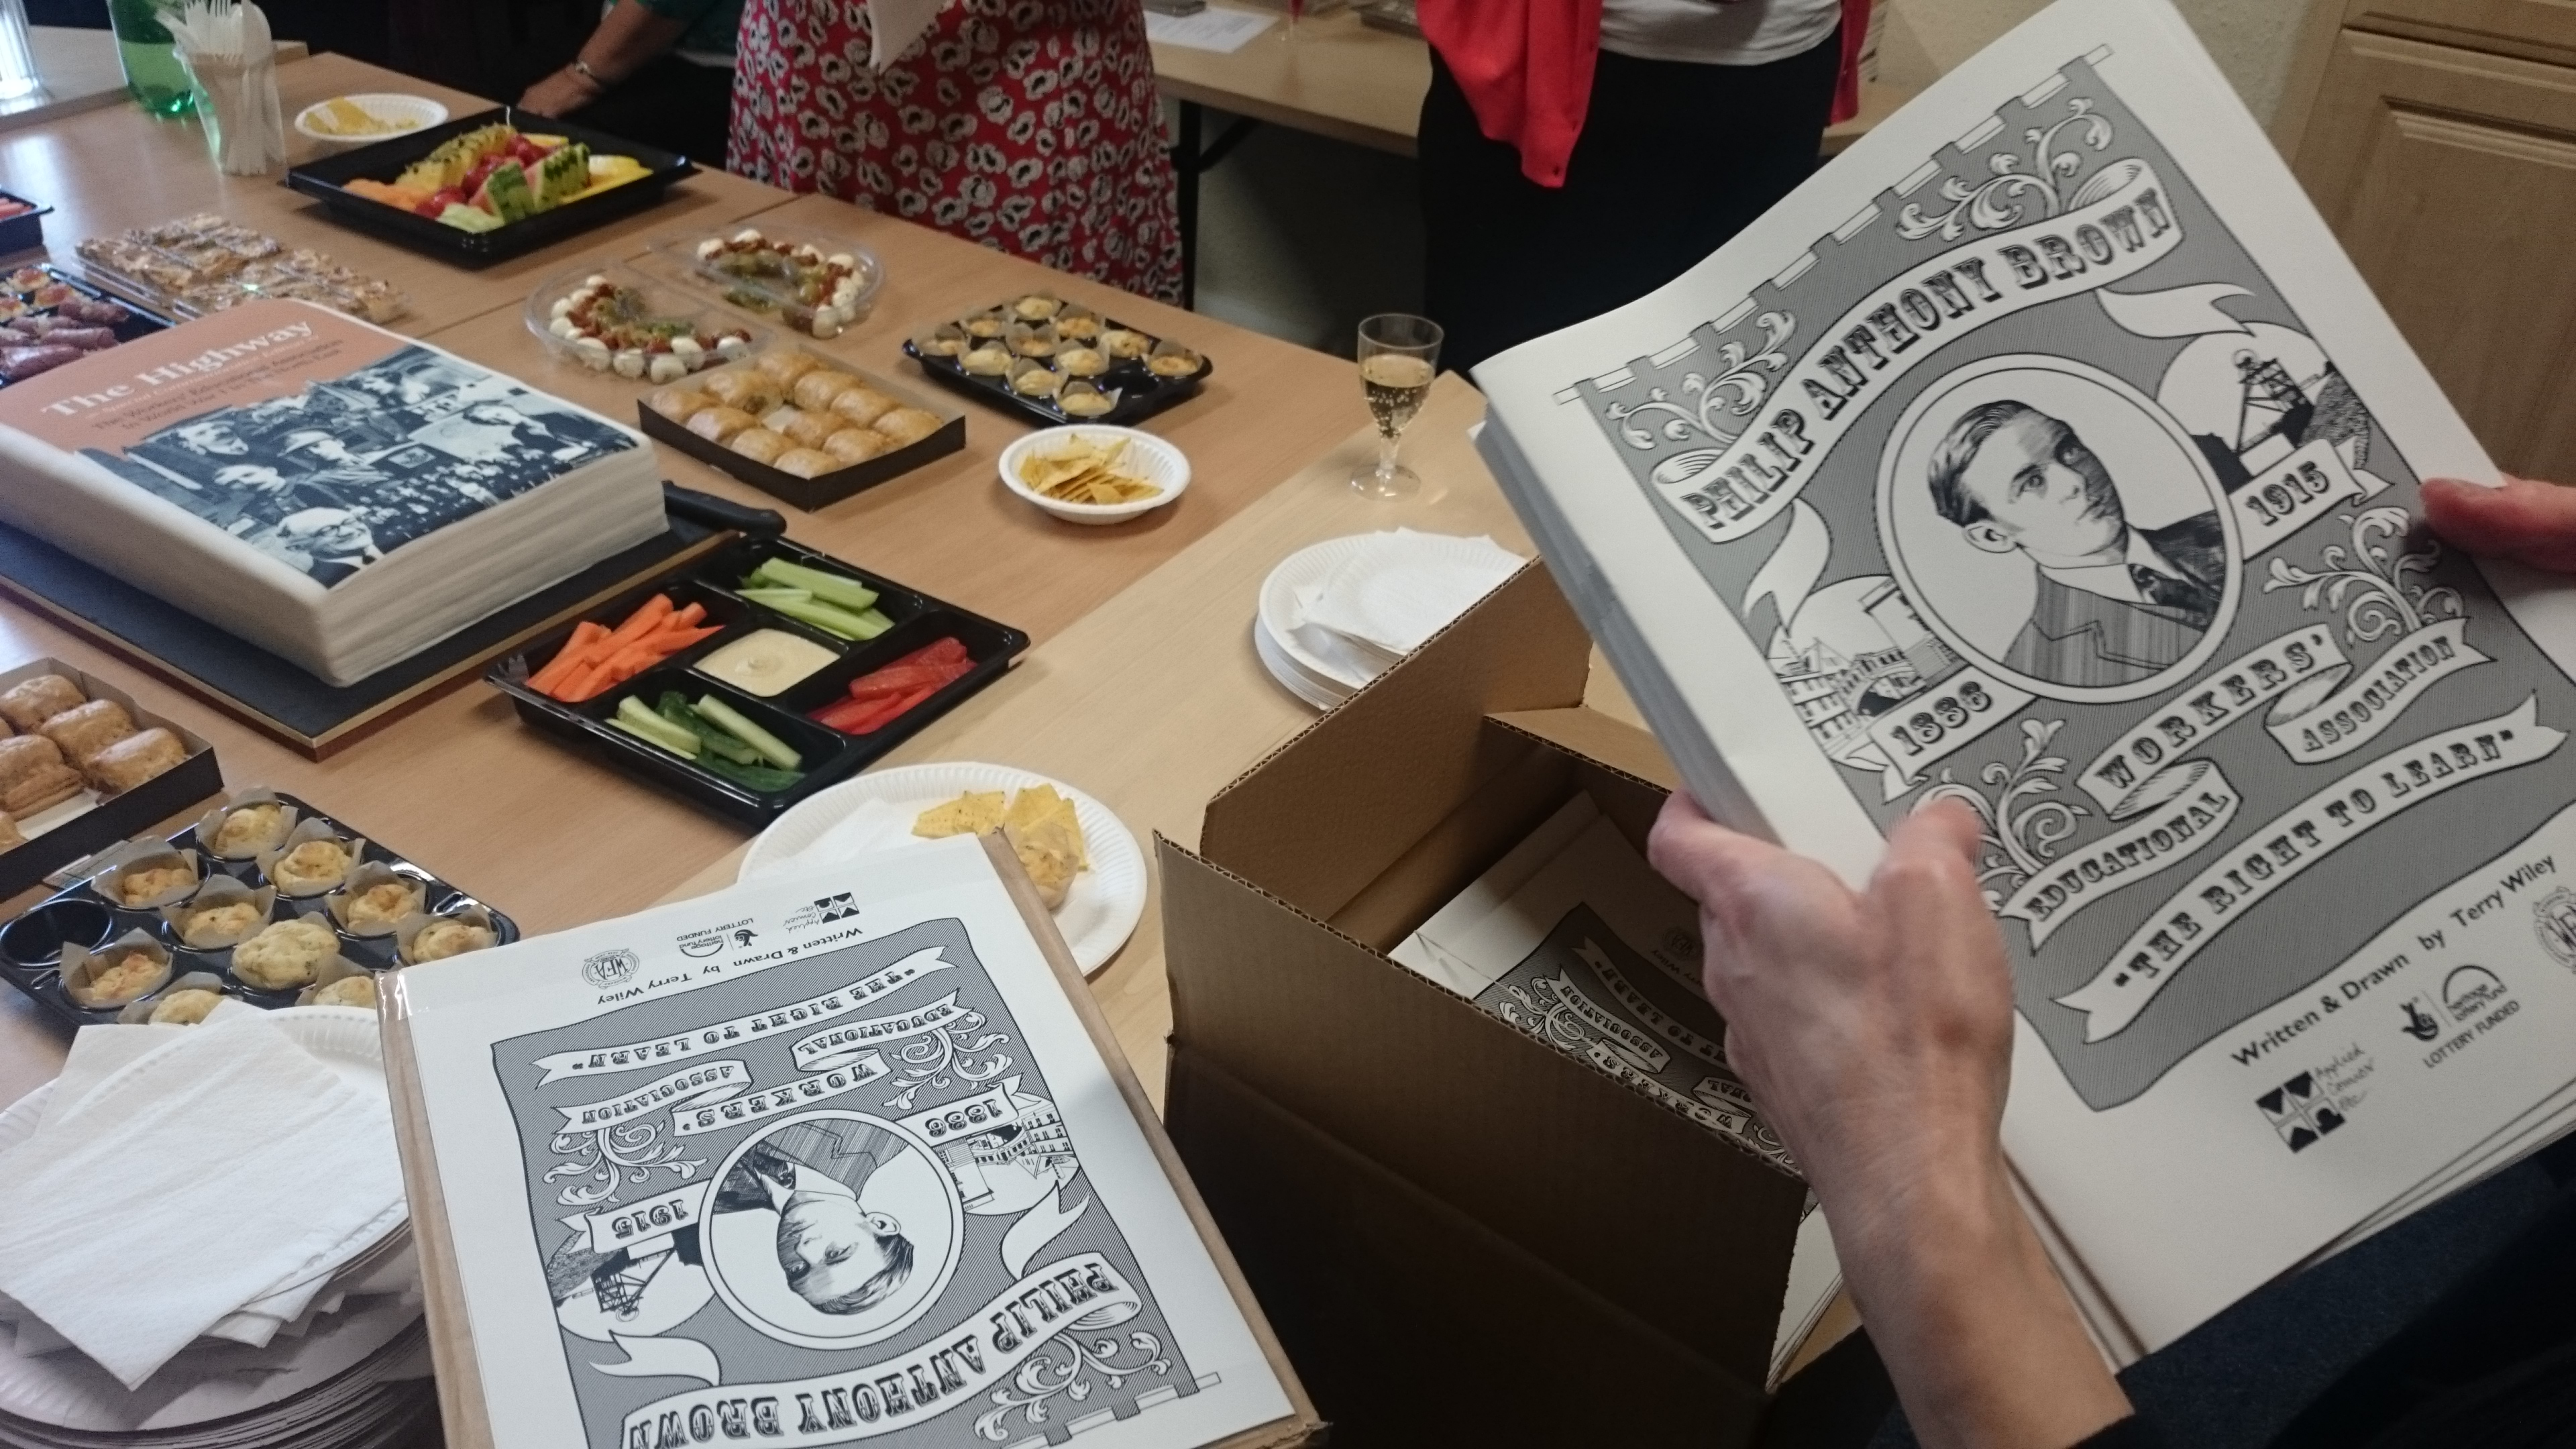 Unboxing 'The Right To Learn' comic at the WEA's project launch party